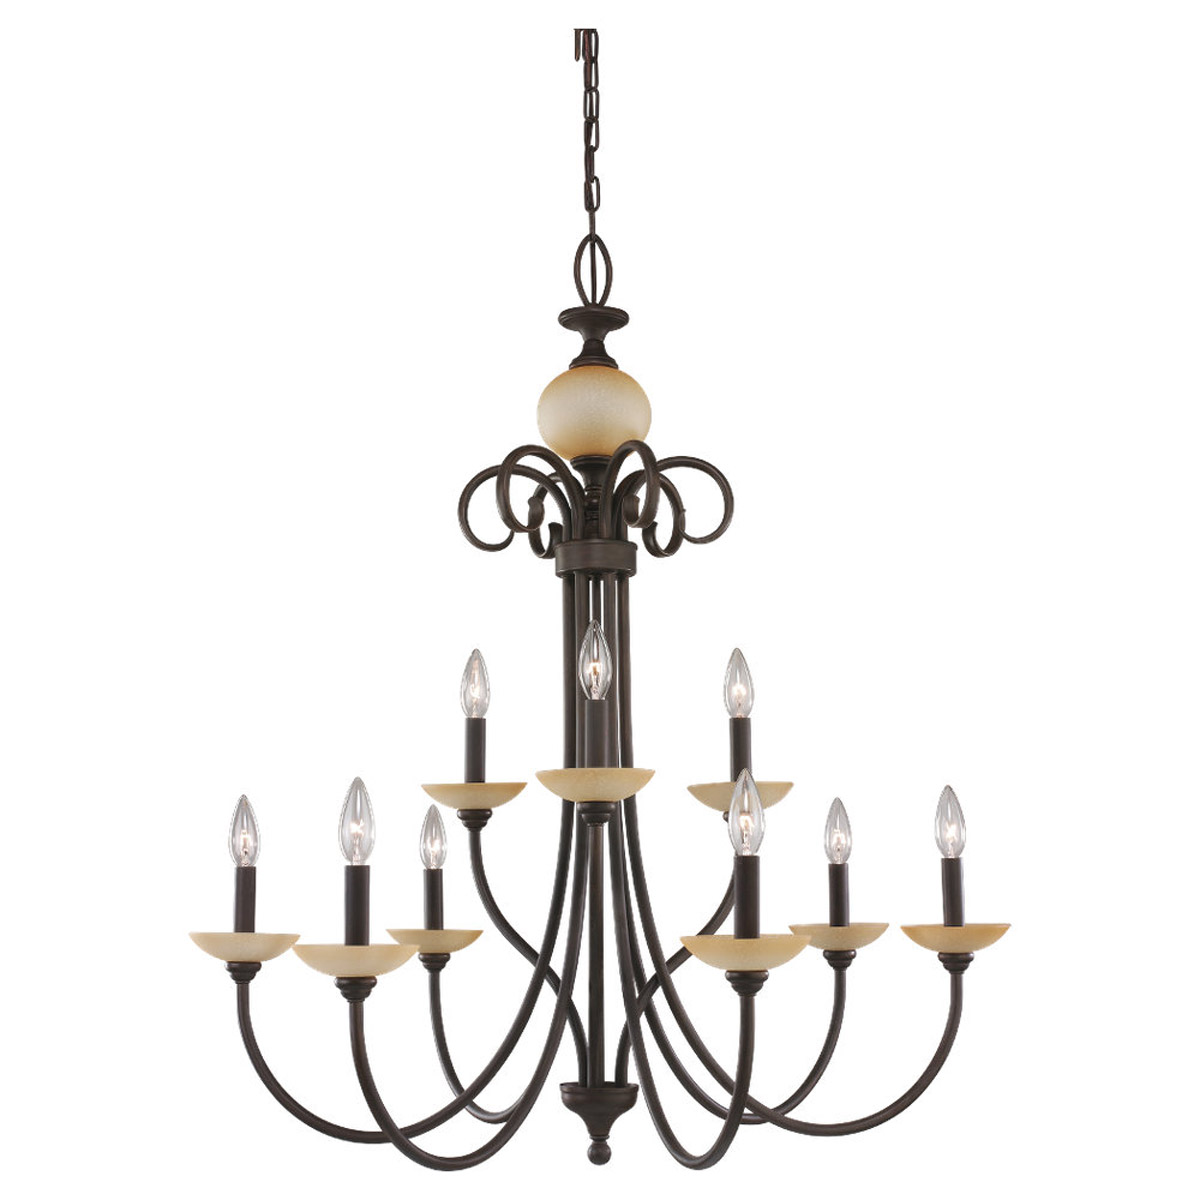 Sea Gull Lighting Montclaire 9 Light Chandelier in Olde Iron 31108-72 photo